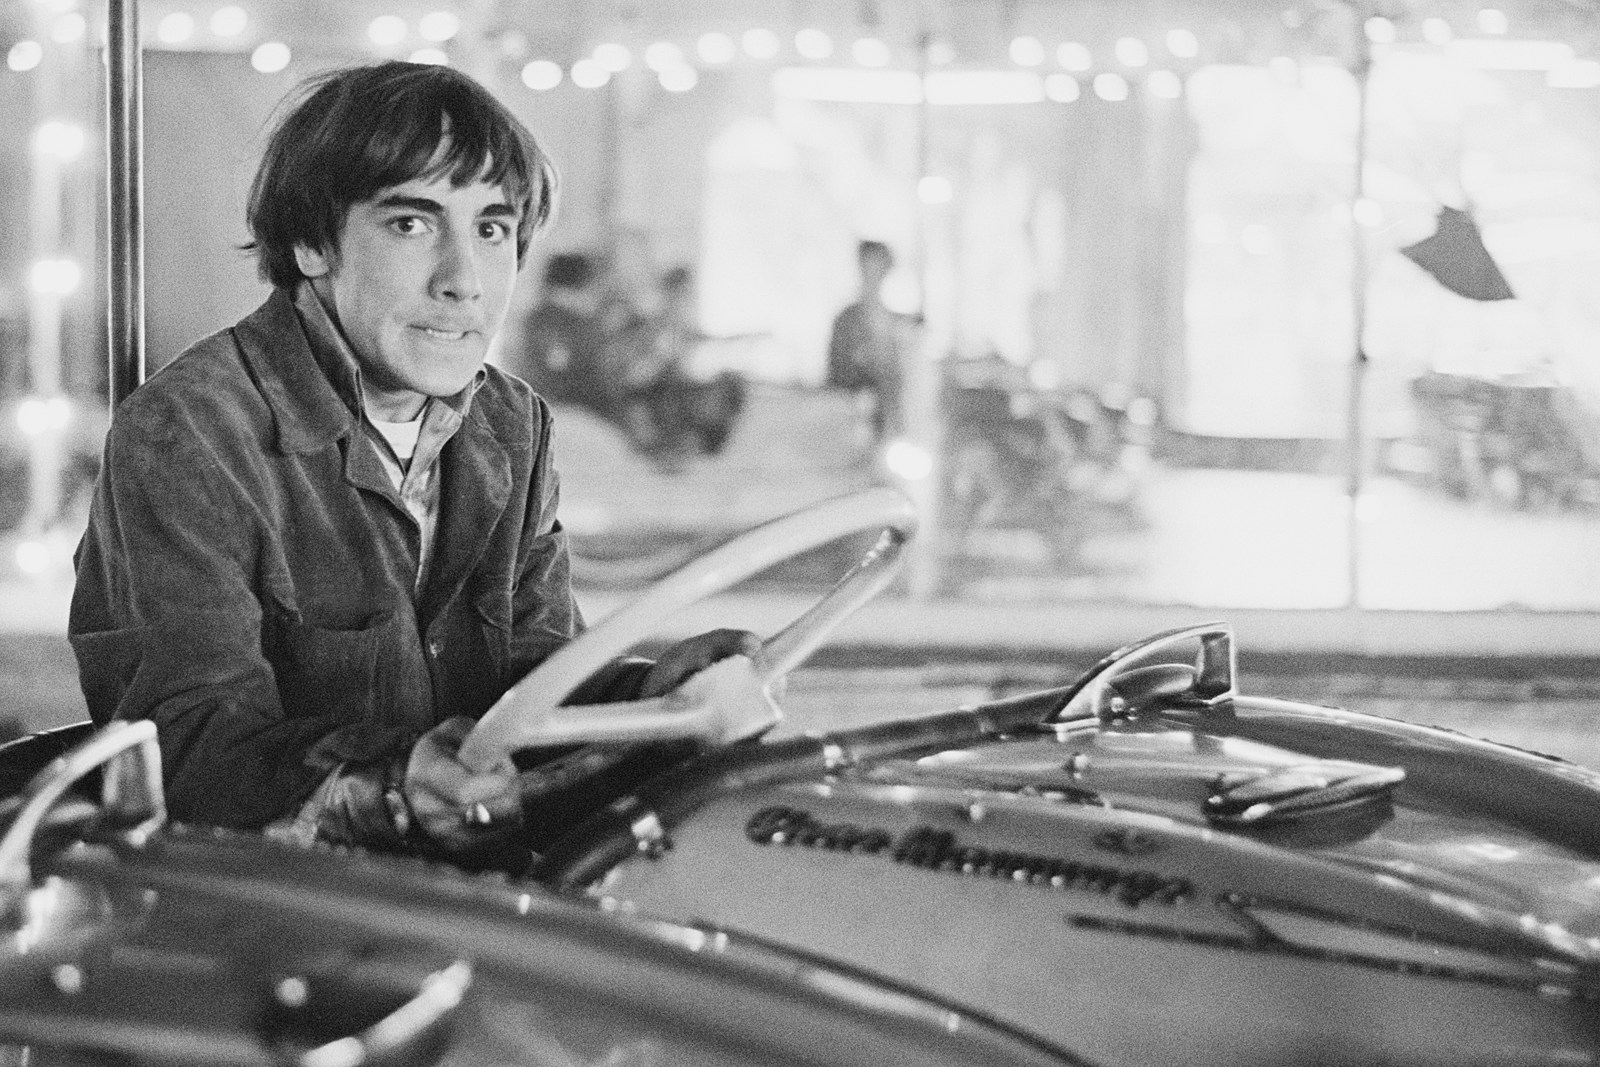 Image result for keith moon january 4 1970 accident images